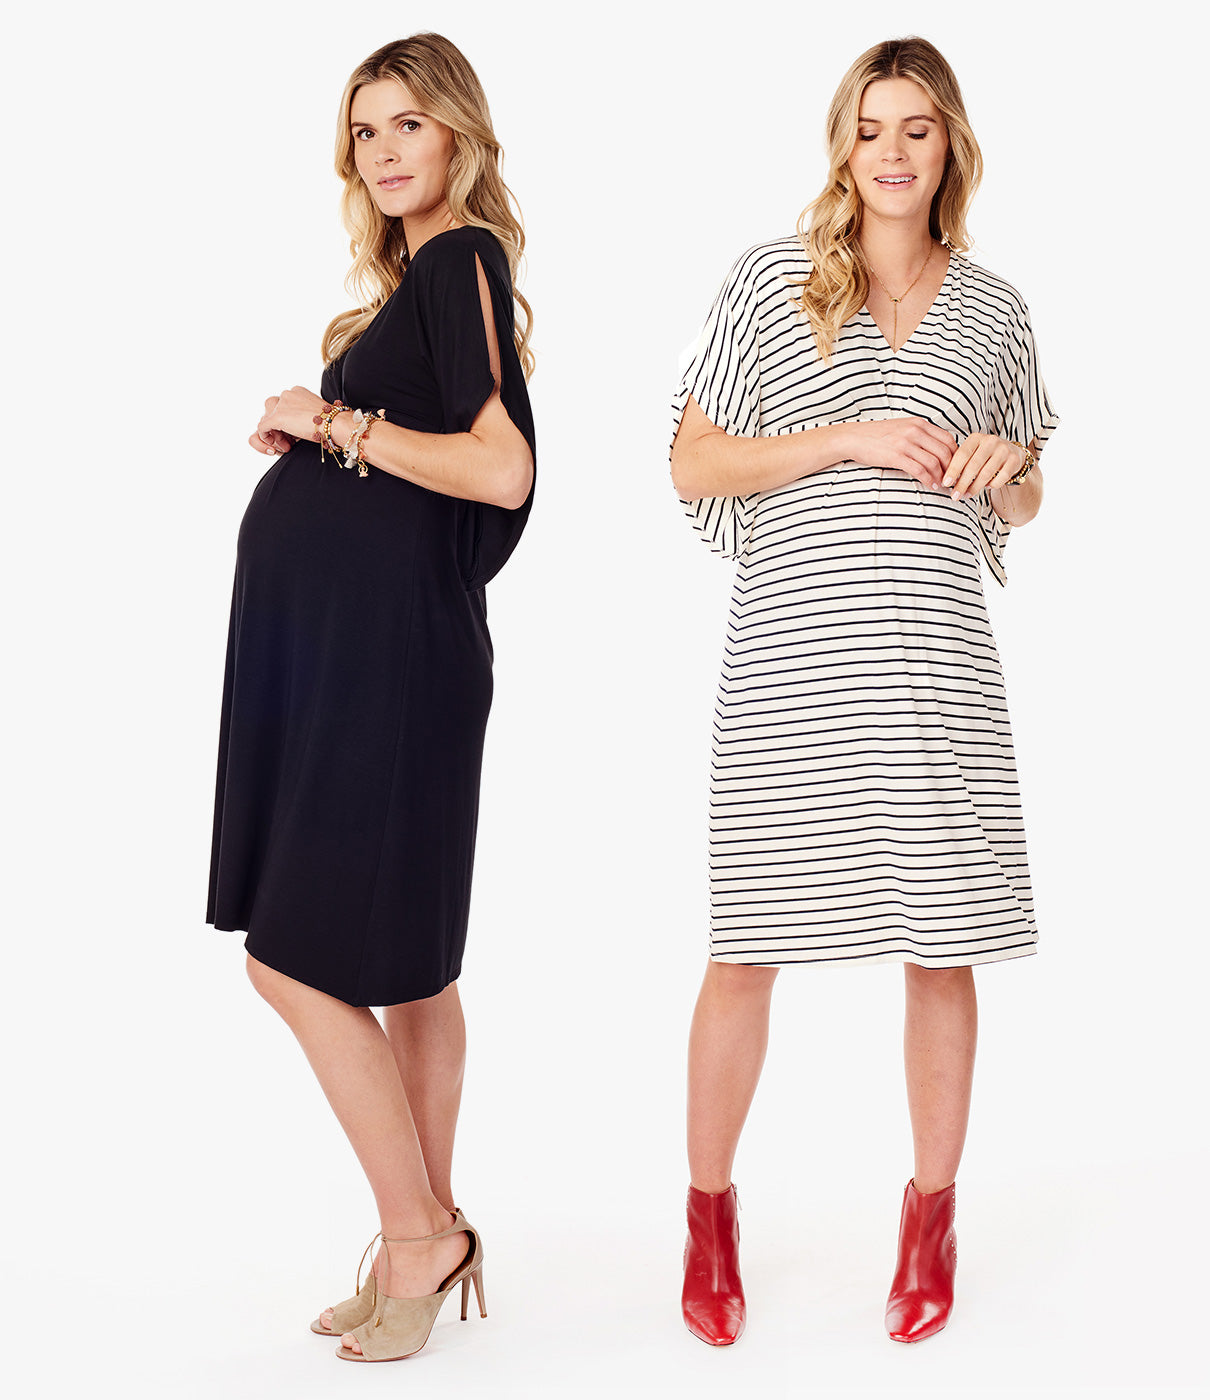 WHERE TO WEARThe beauty of this dress? Wear it everywhere and anywhere. Just change up your shoe and you've got a great maternity wardrobe staple.